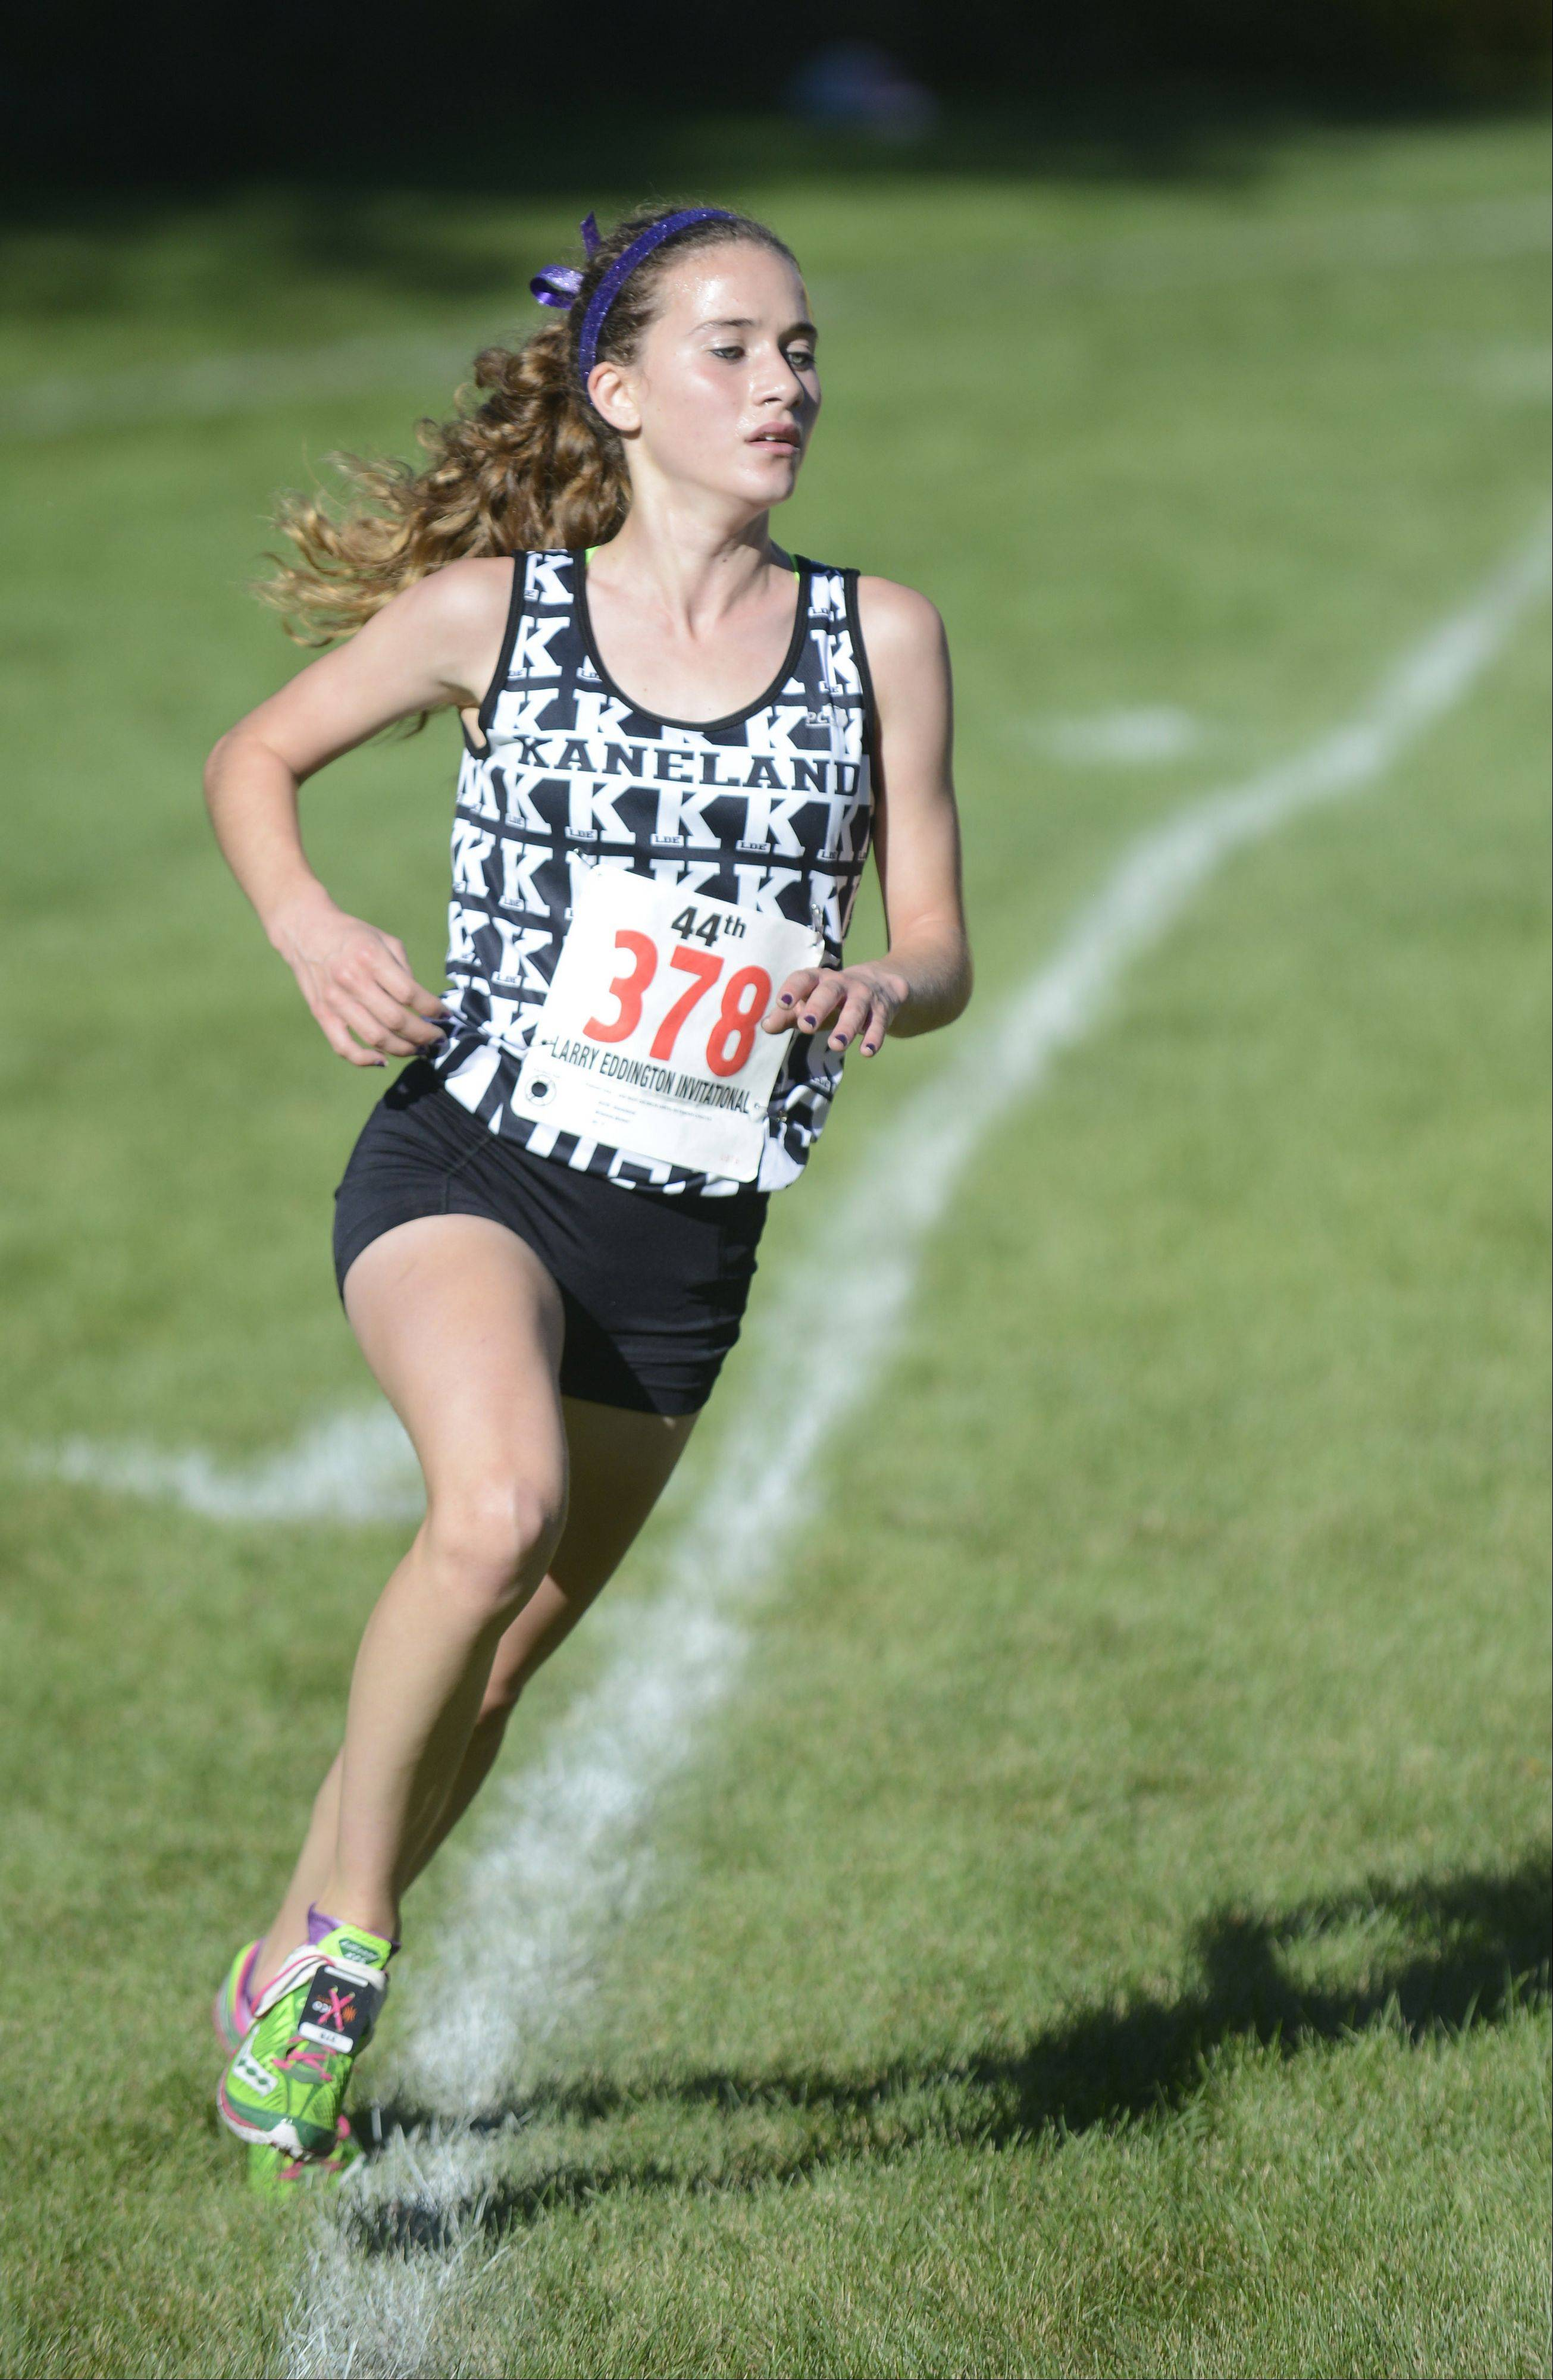 Laura Stoecker/lstoecker@dailyherald.com � Kaneland's Brianna Bower takes fifth place at the Kaneland Invitational cross country meet in Elburn on Saturday, September 21.